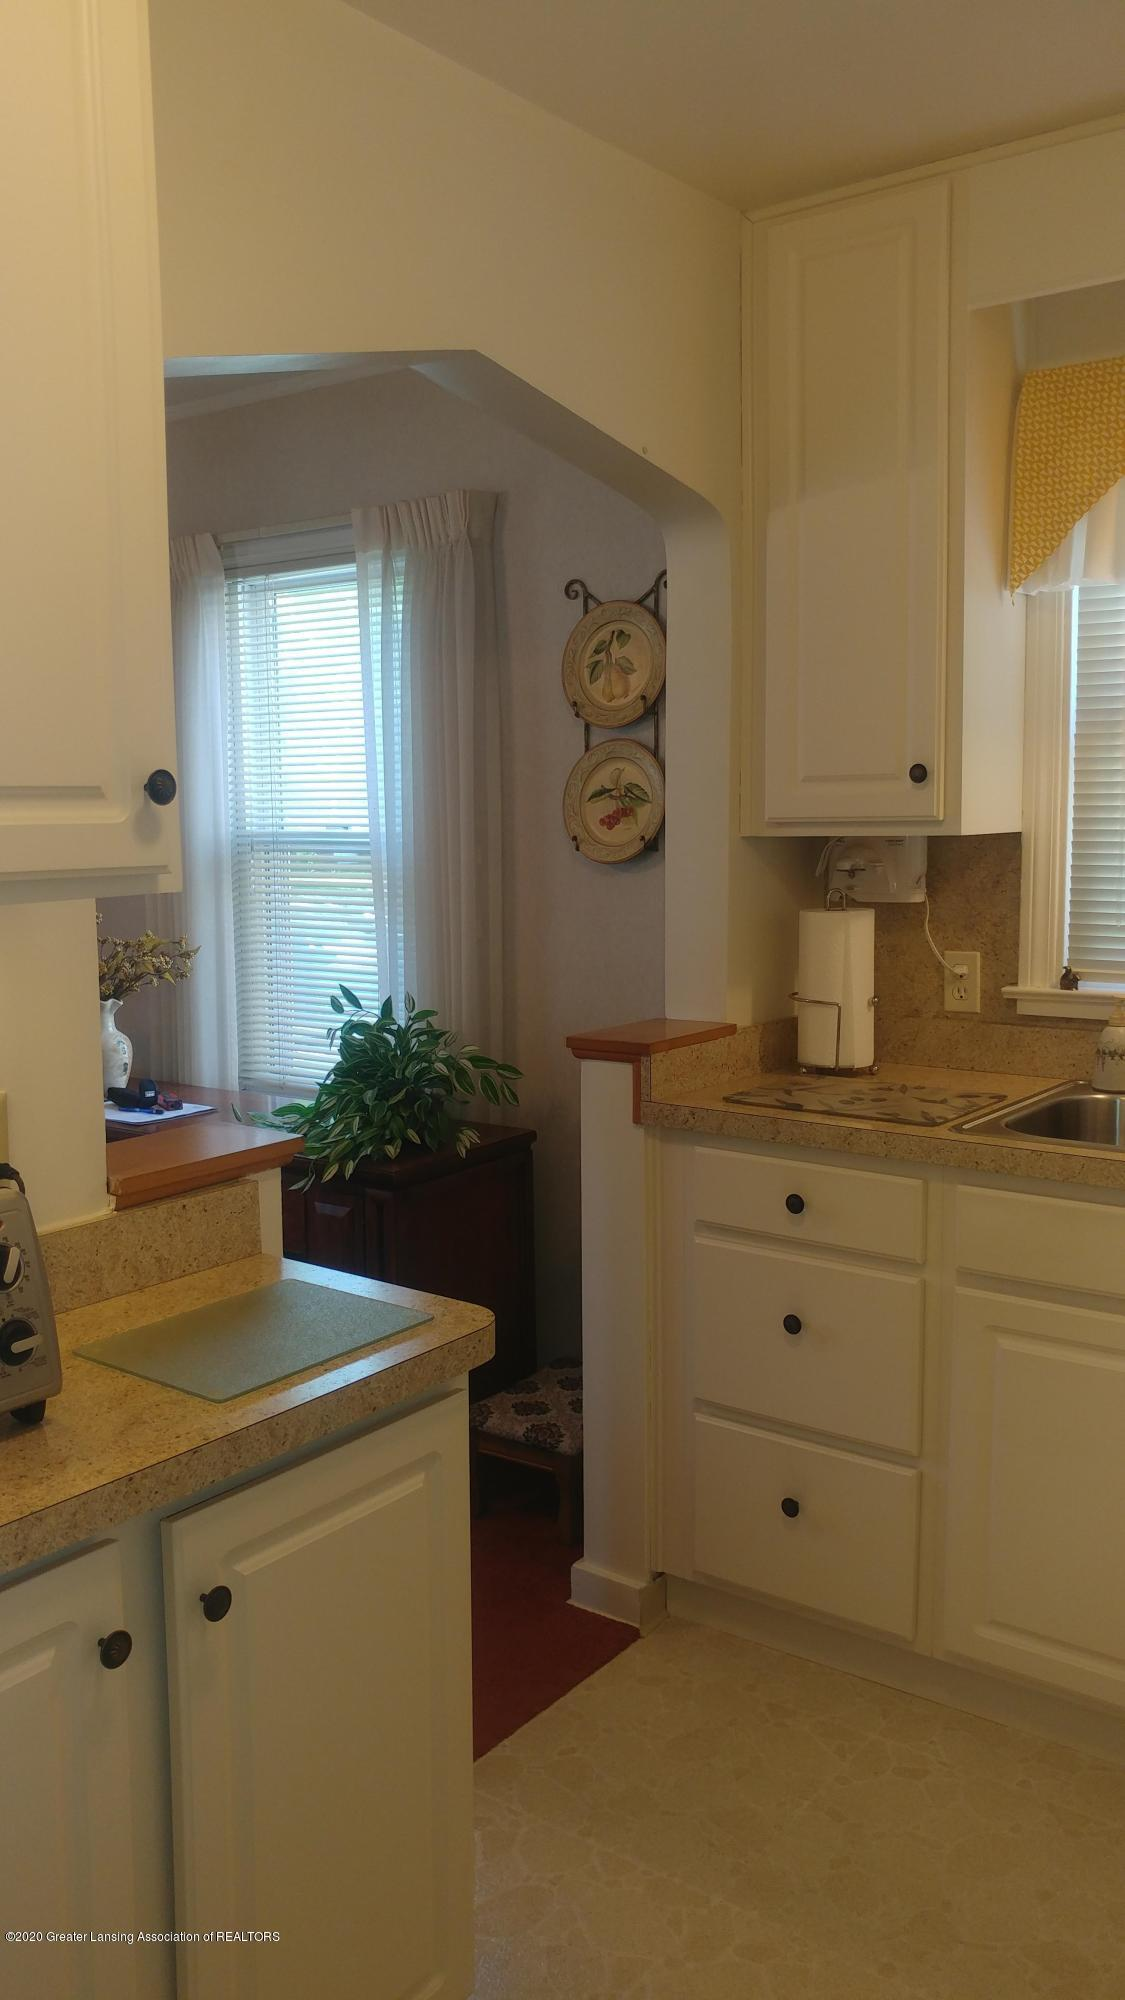 1403 Pico Ave - 1403 - Kitchen to Dining - 11